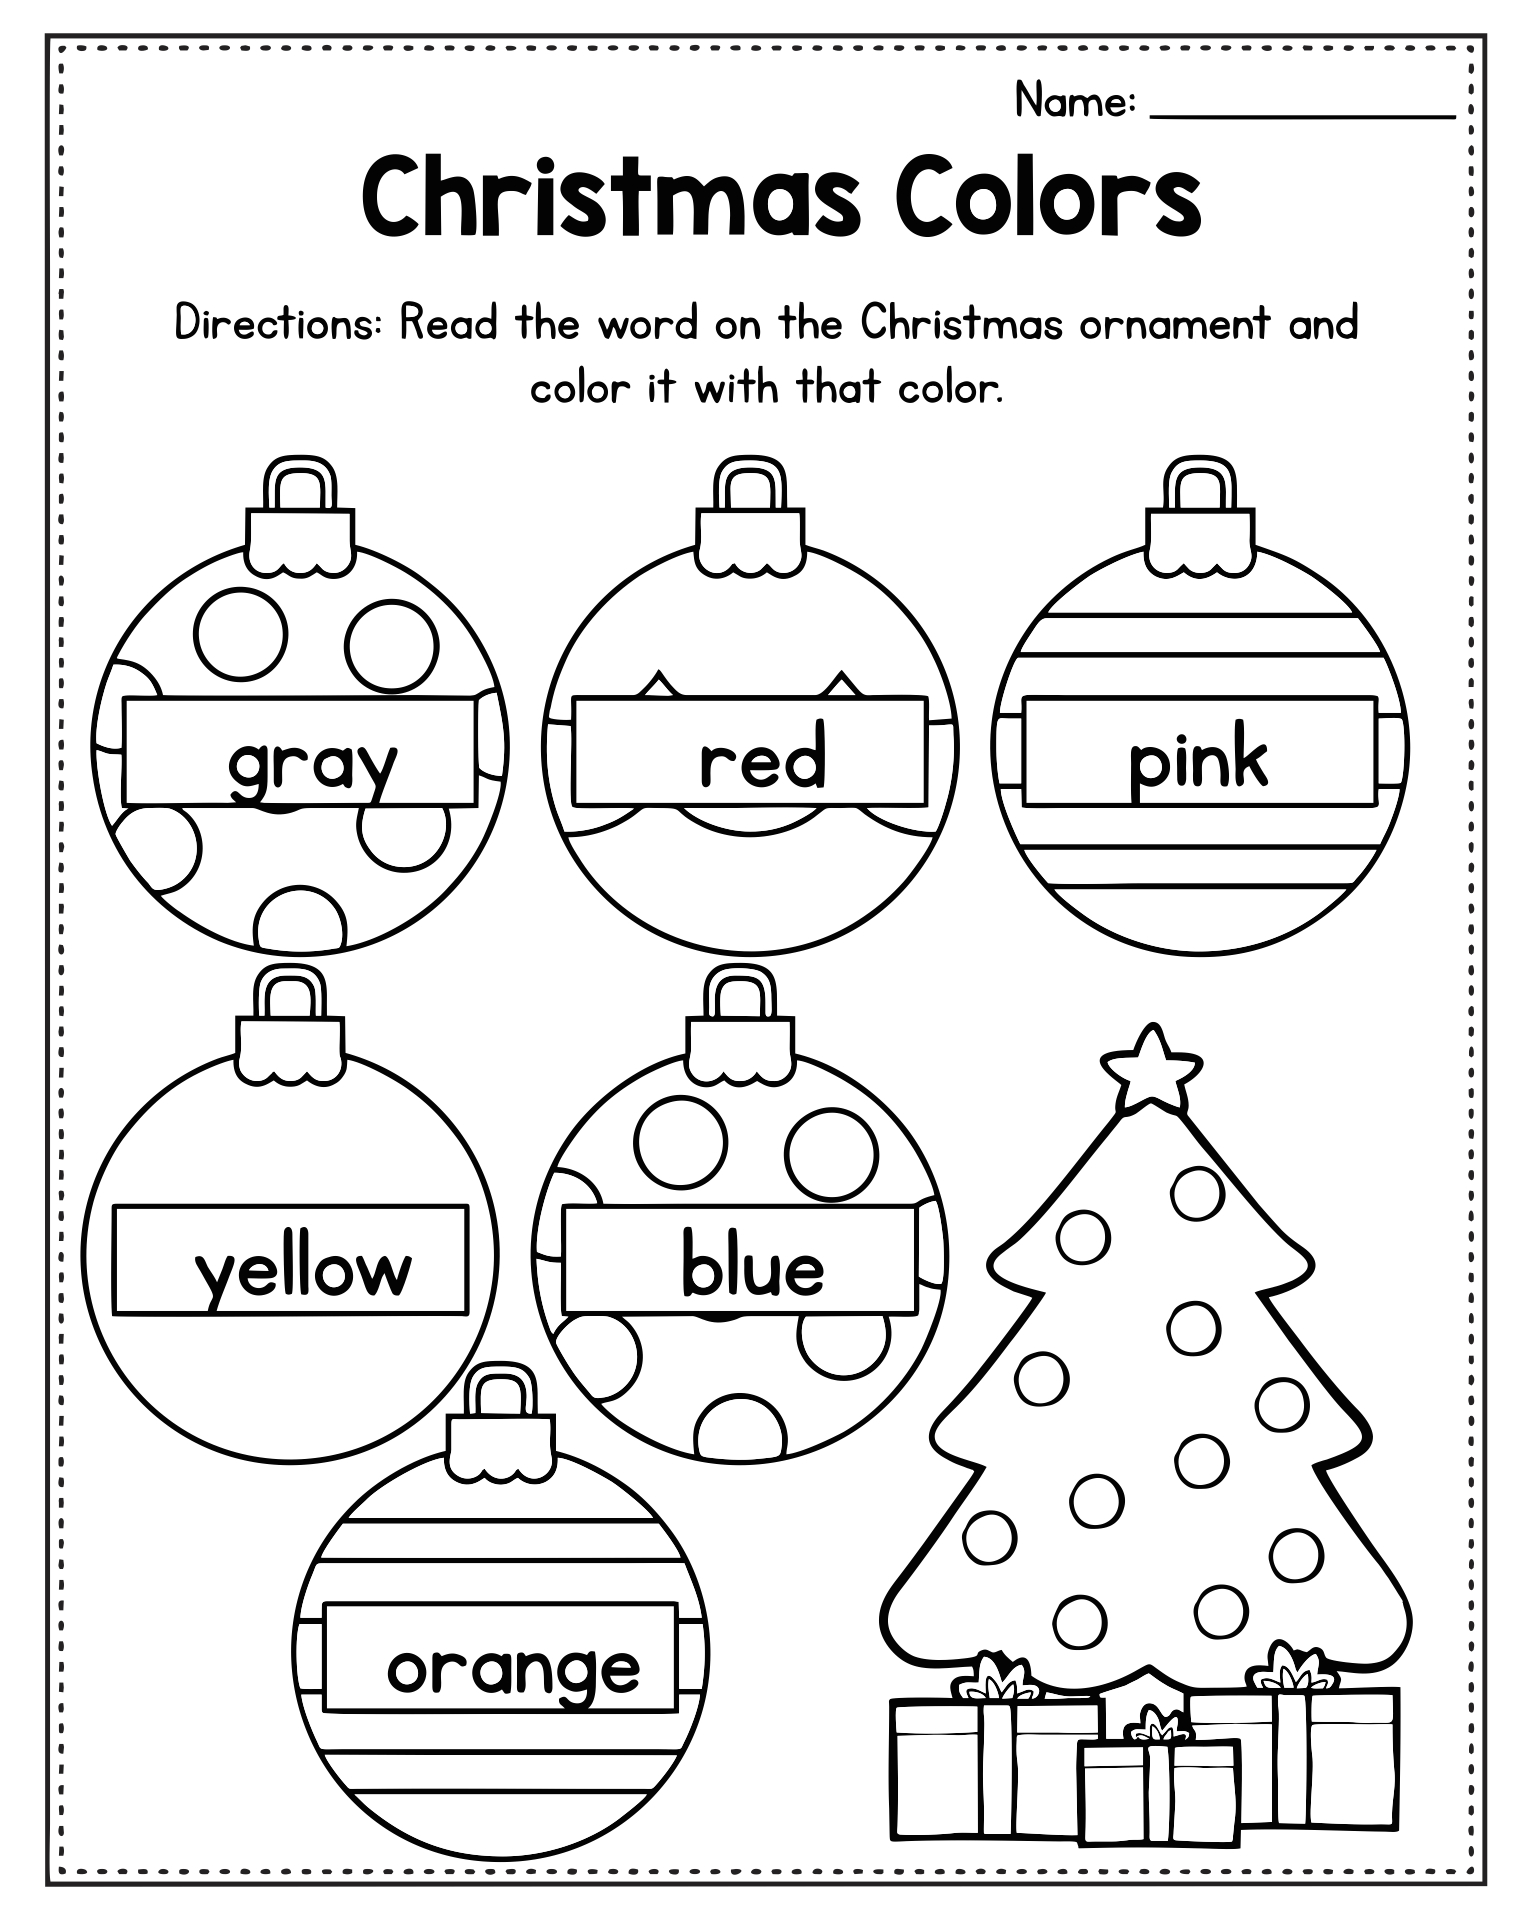 number names worksheets free printable activity sheets for preschoolers christmas activity sheets for kindergarten - Activity Sheet For Preschoolers